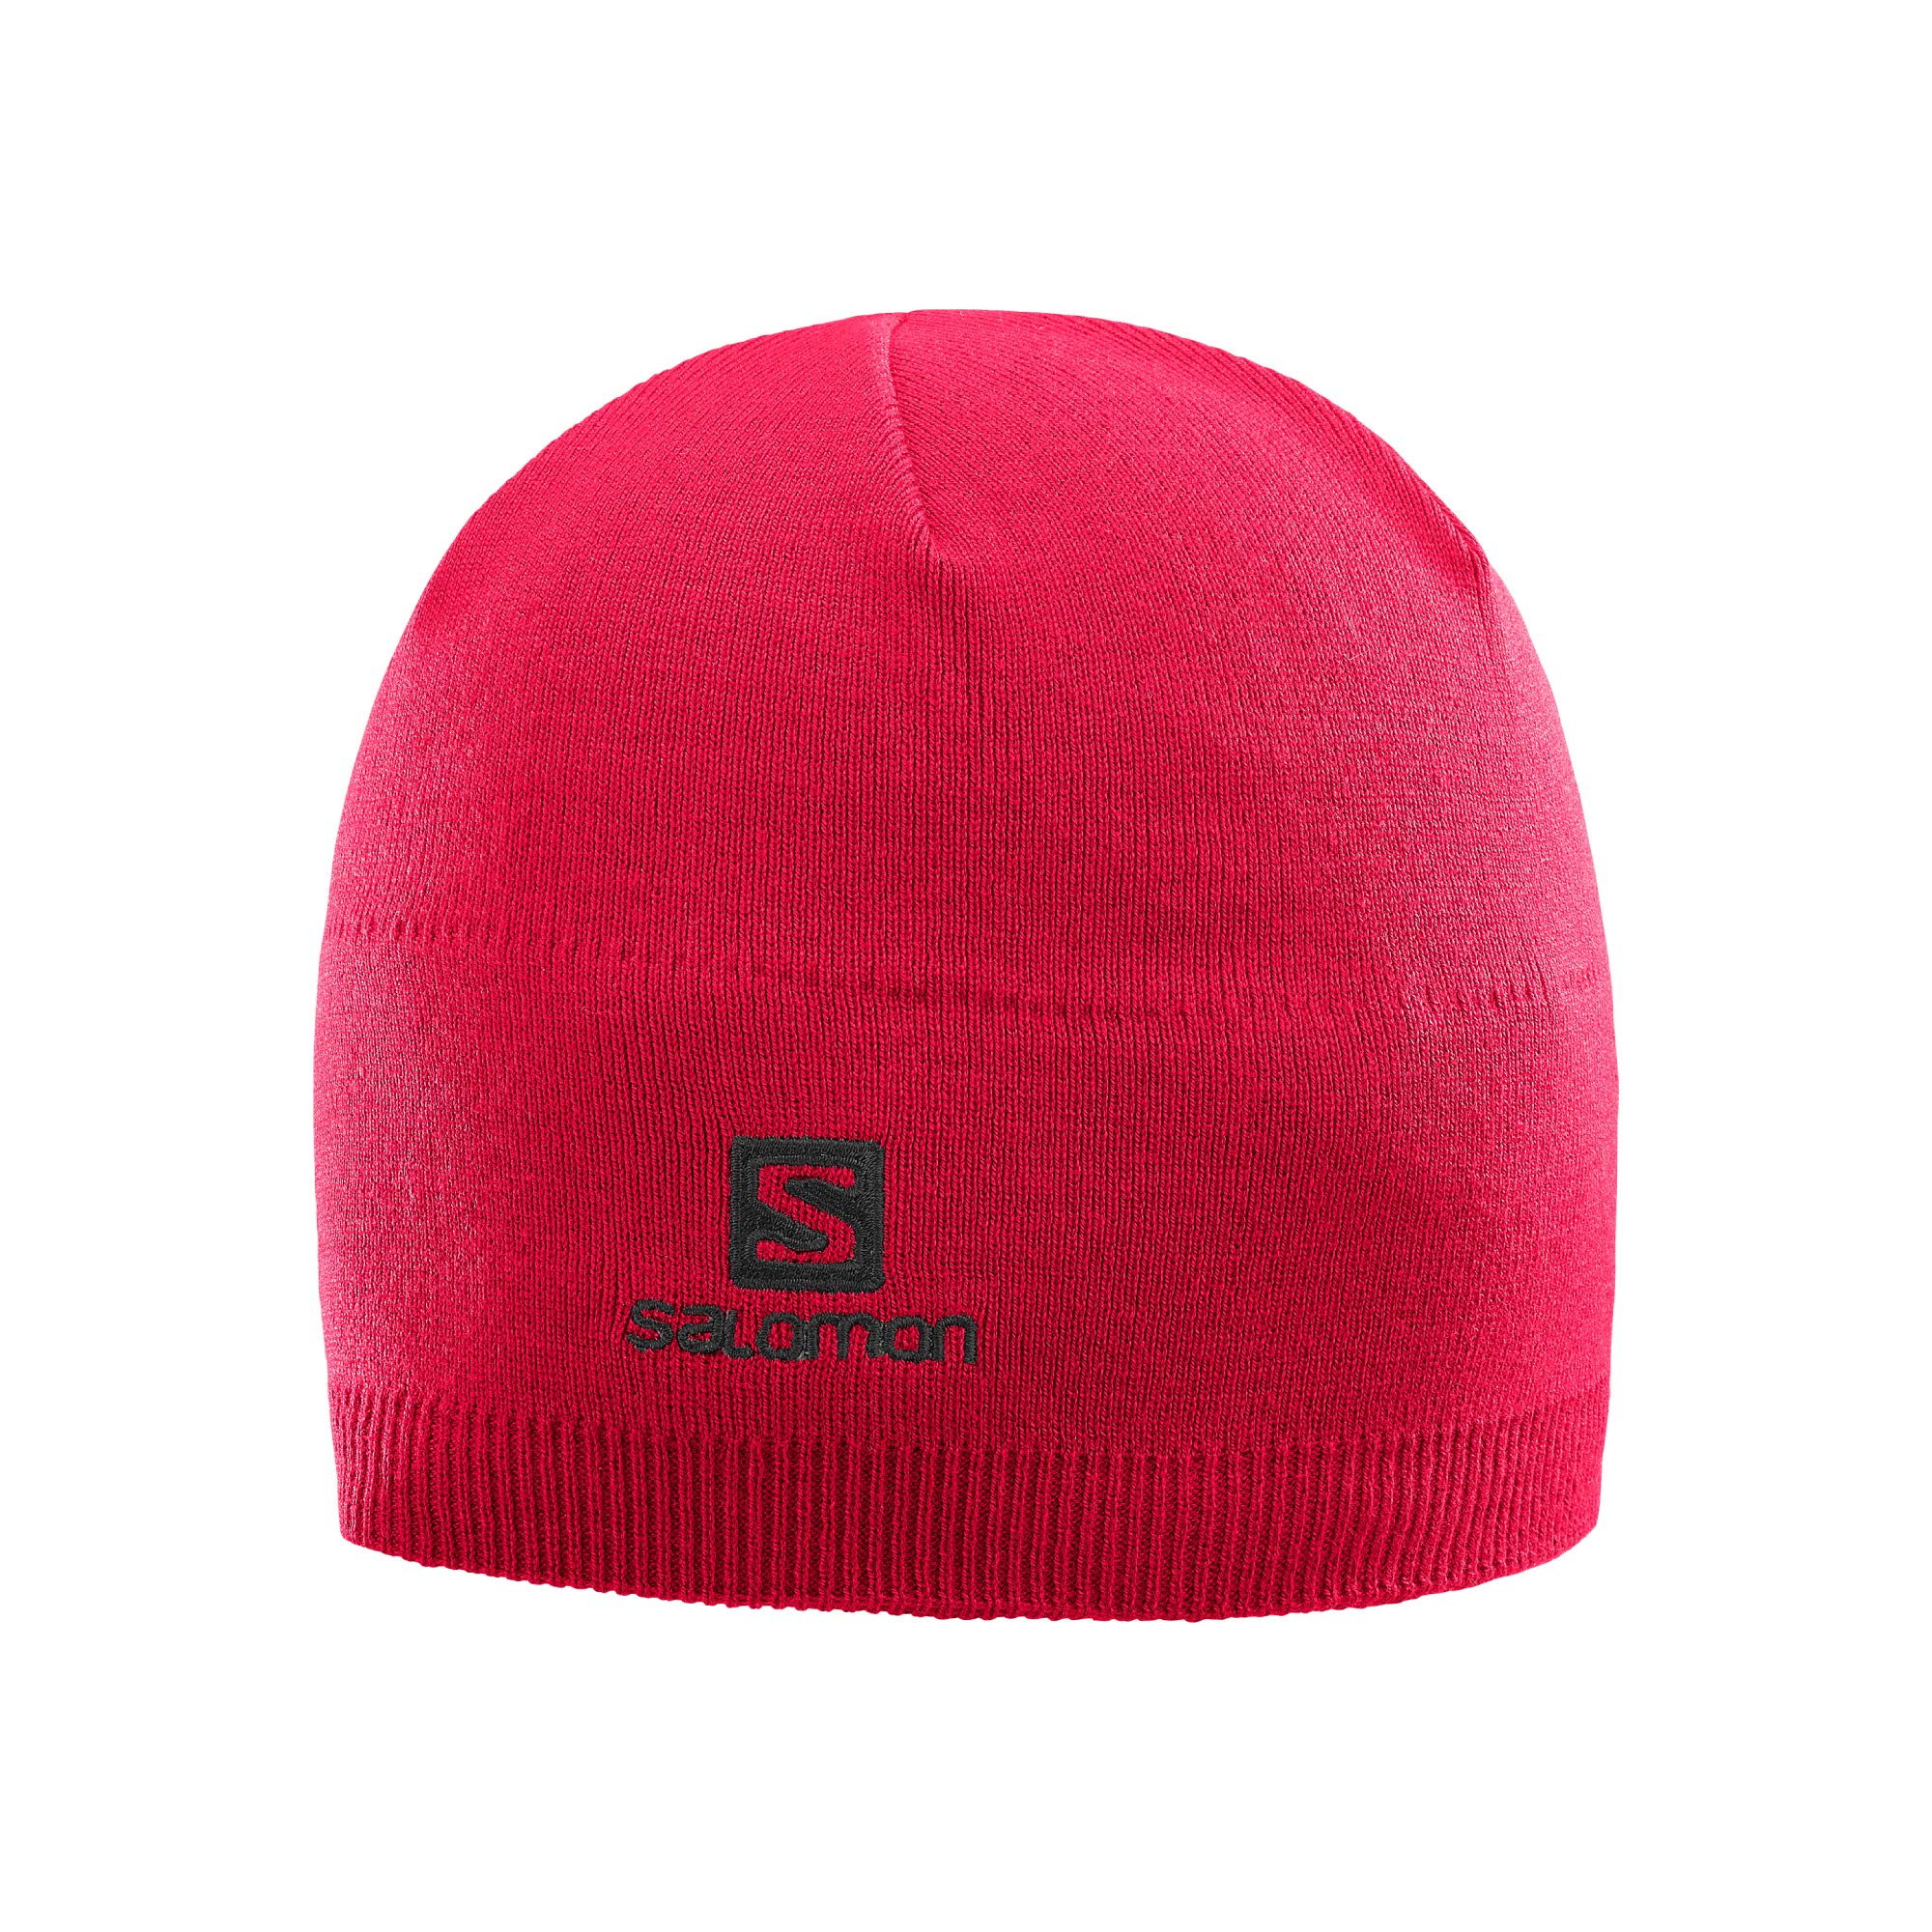 a347d62f7f75 Salomon Unisex Winter Beanie Barbados Cherry One Size . 889645428147 ...